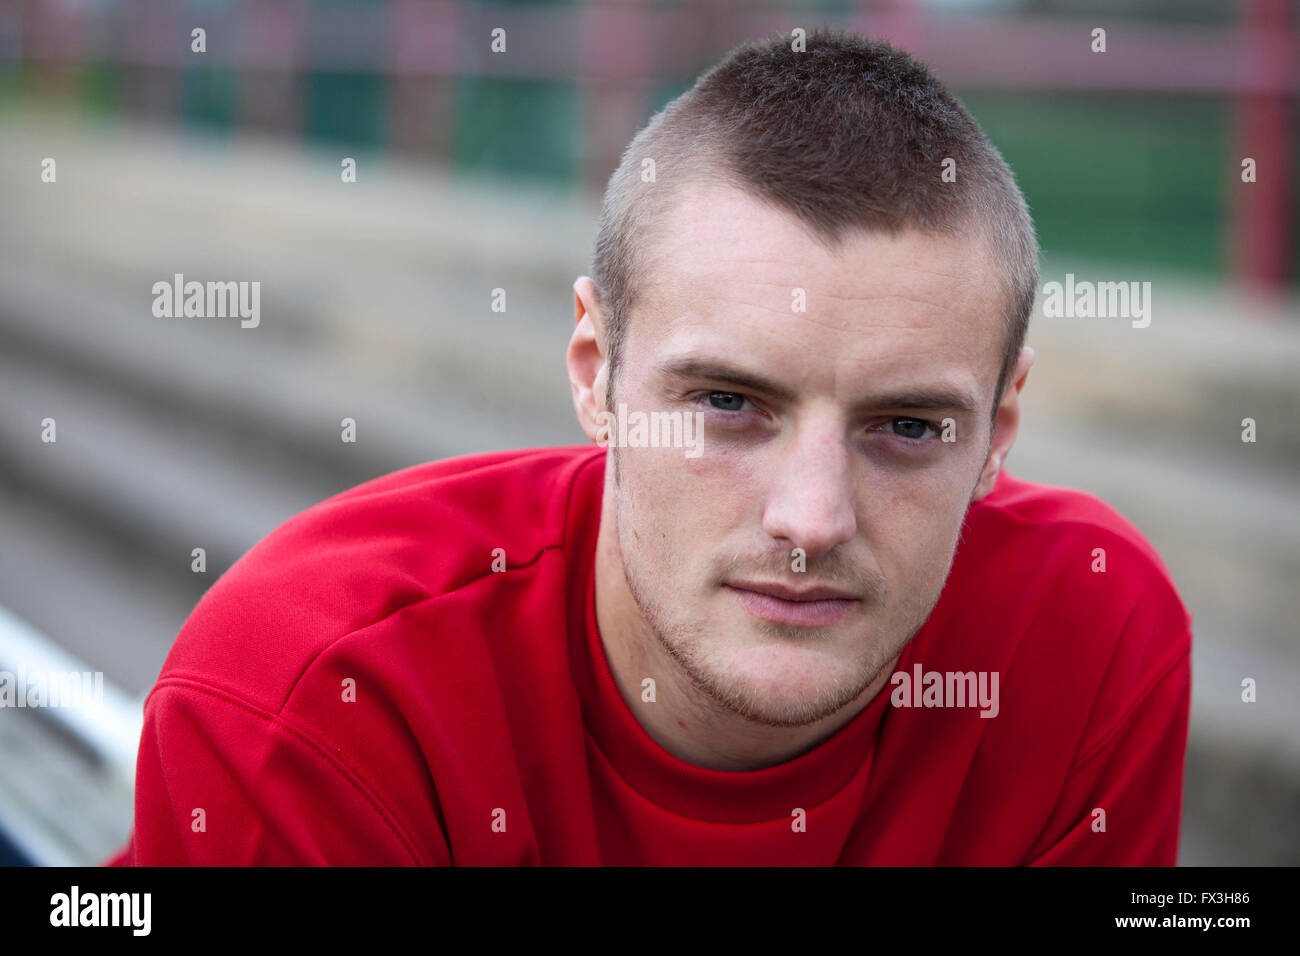 28/11/11  England football star Jamie Vardy pictured in 2011 when he was playing for  Fleetwood FC - Stock Image